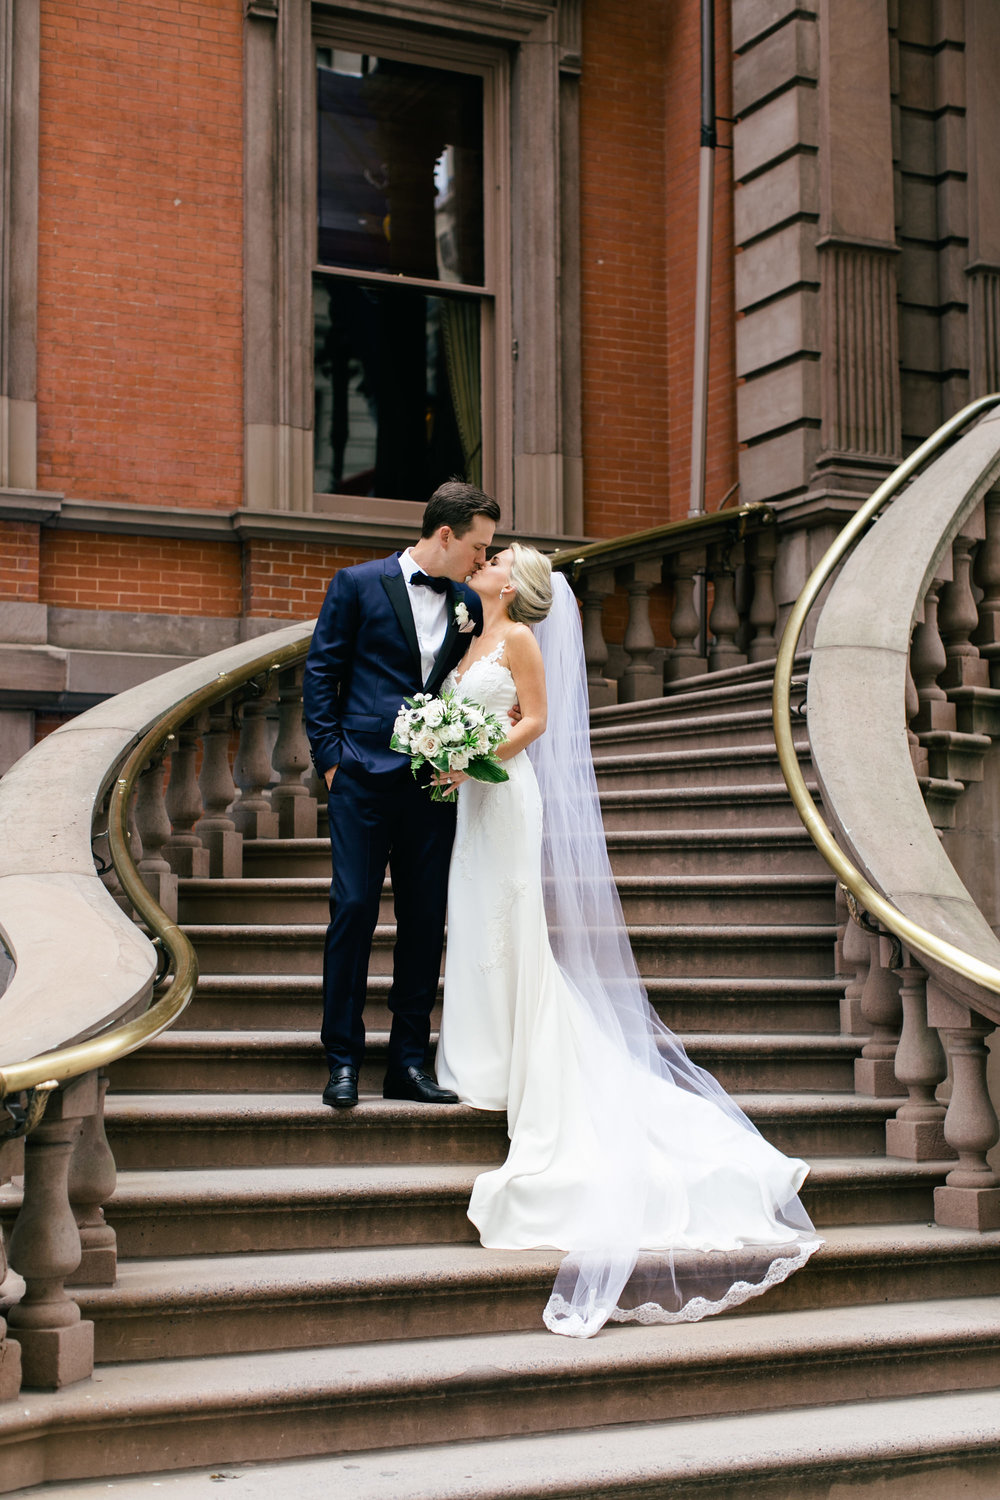 photography-wedding-weddings-natural-candid-union league-philadelphia-black tie-city hall-broad street-editorial-modern-fine-art-06.JPG